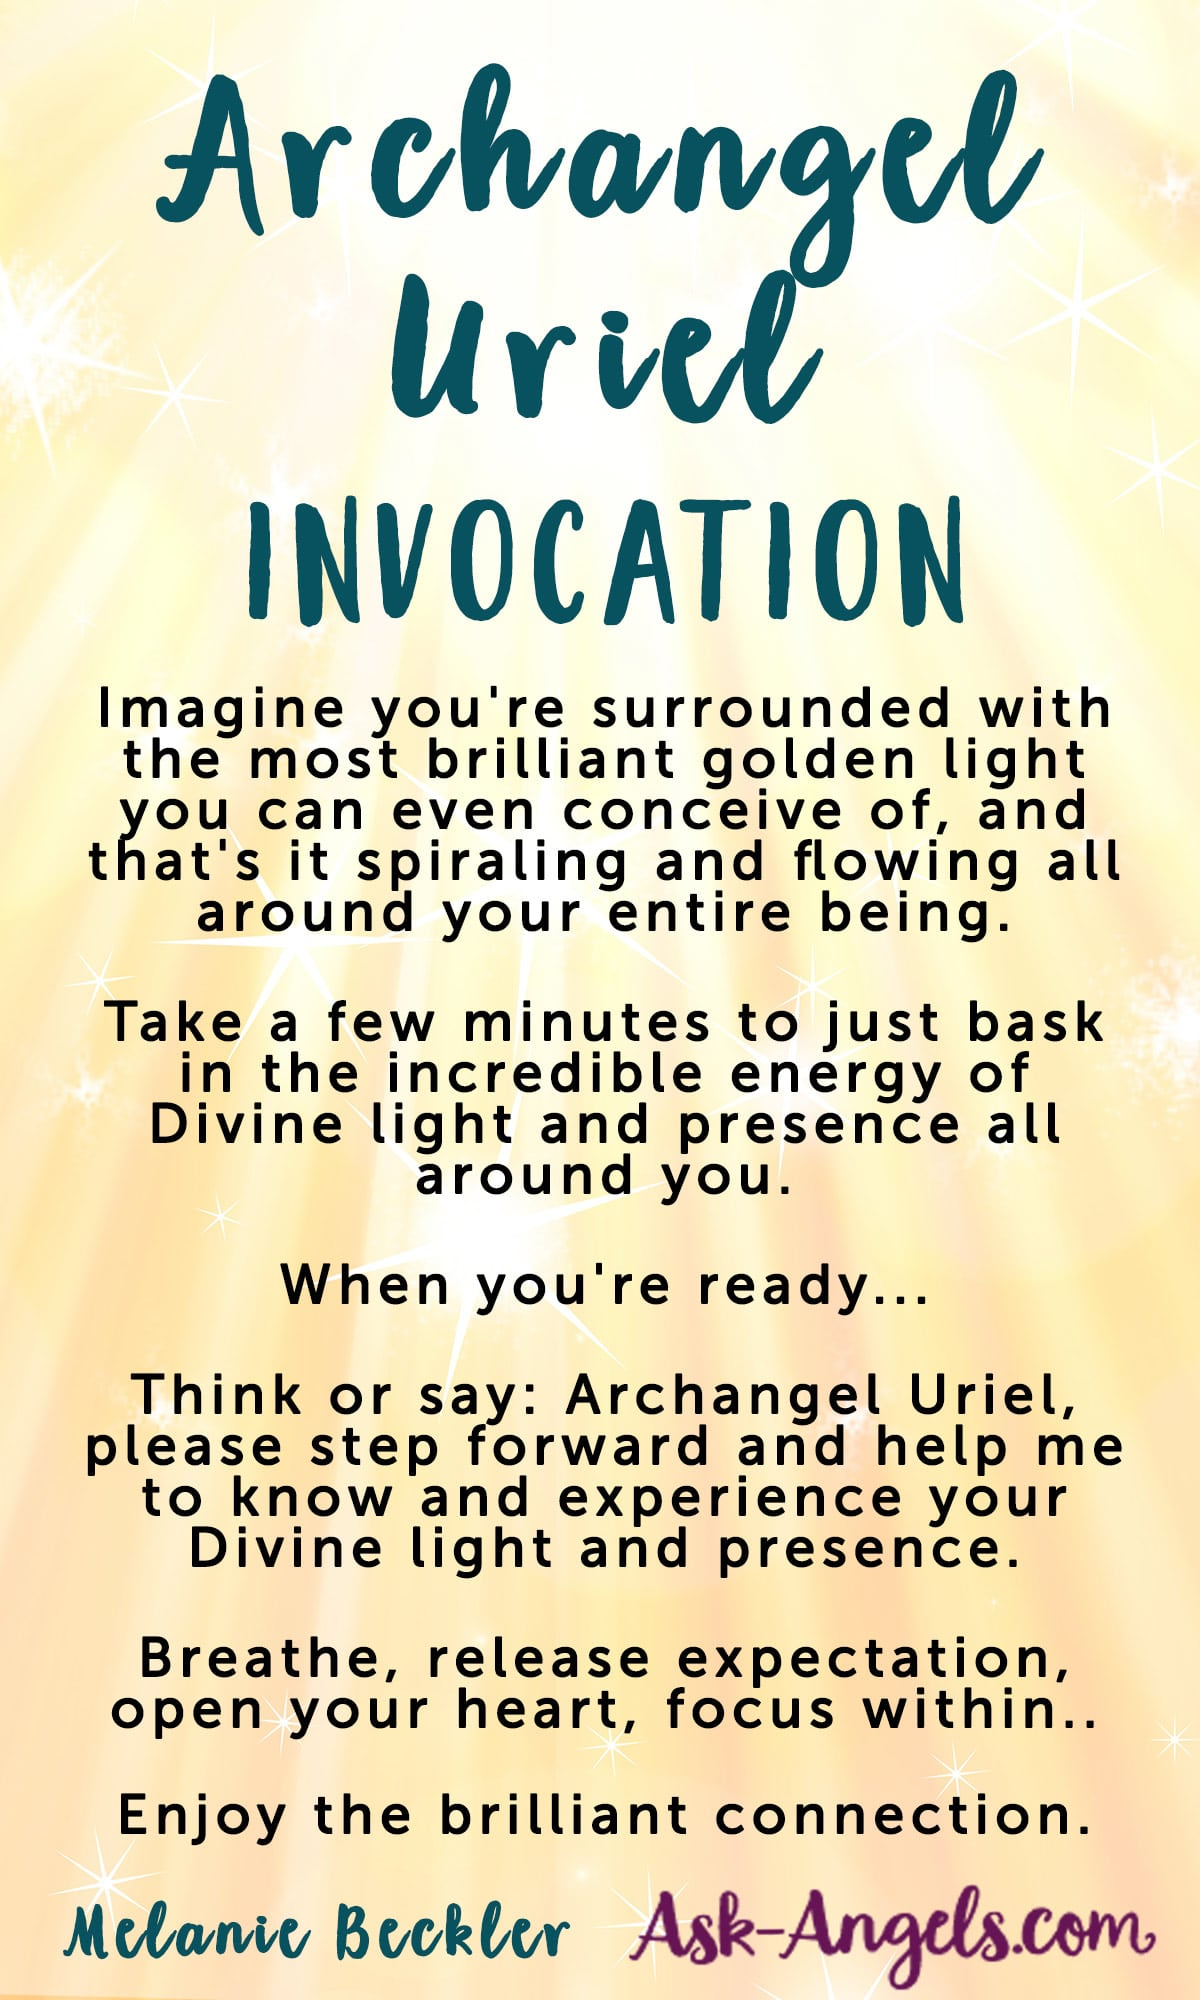 Archangel Uriel - Invoke the Angel of Wisdom, Illumination, And Light